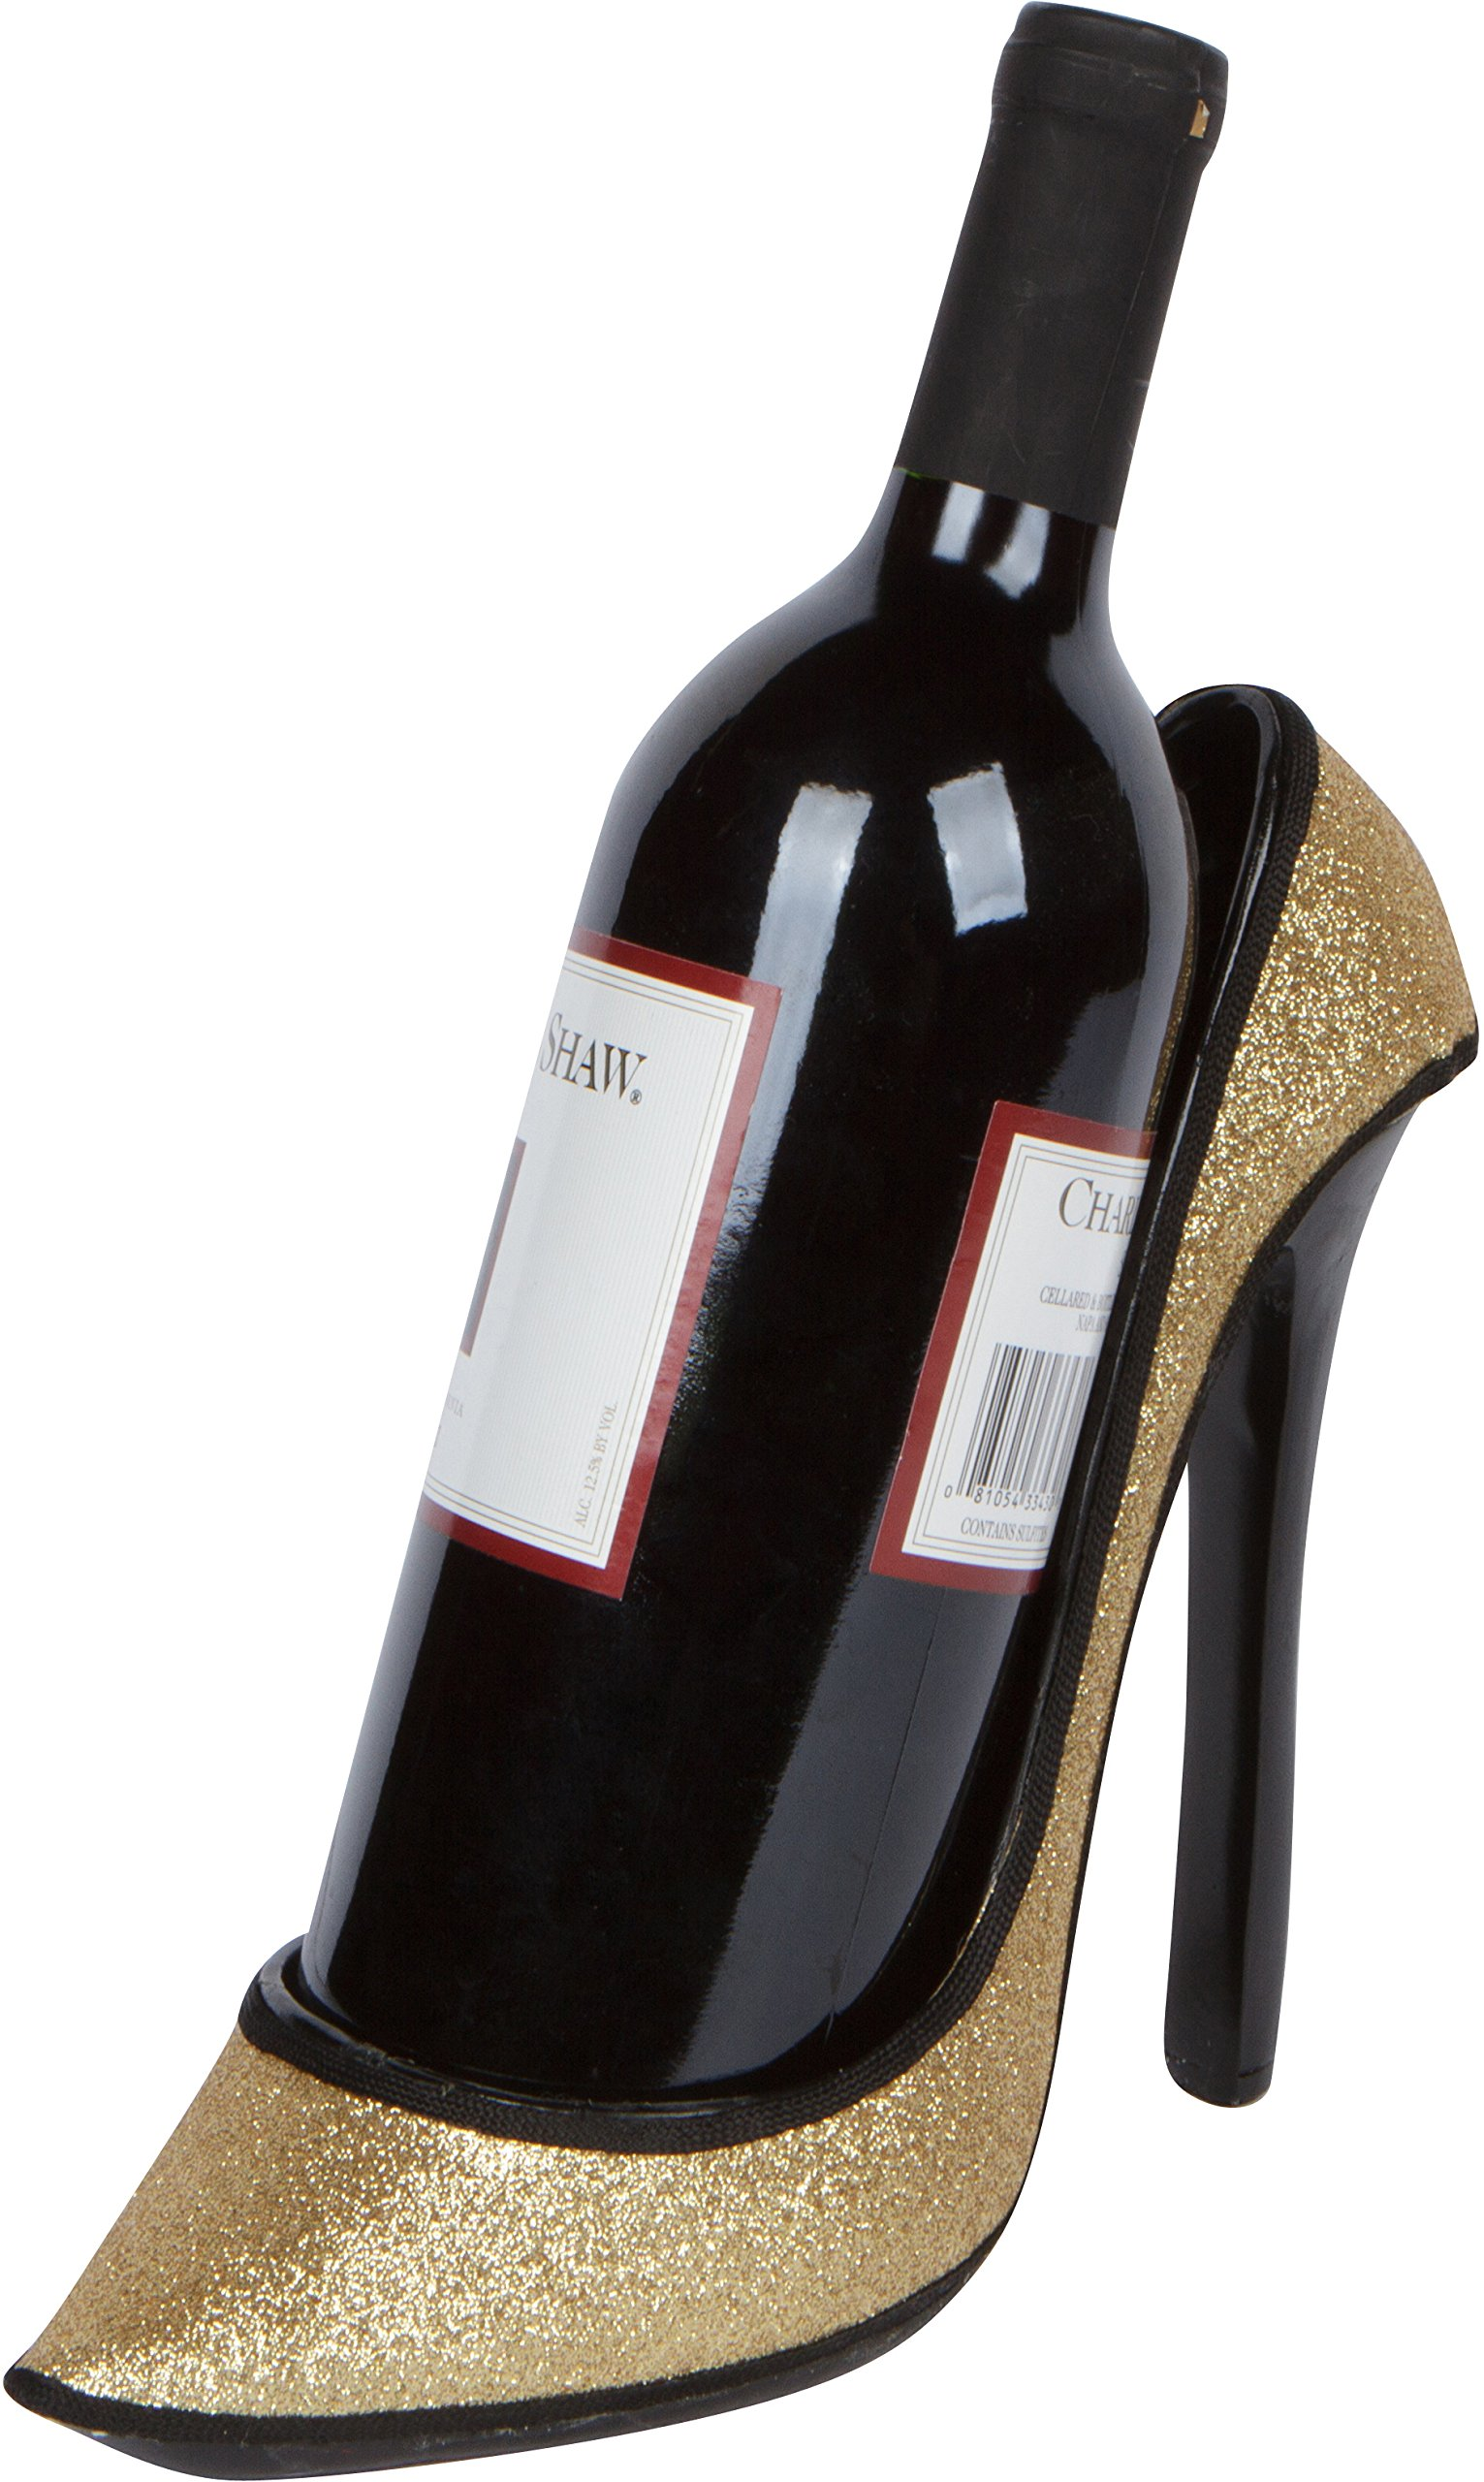 8.5'' x 7''H High Heel Wine Bottle Holder - Stylish Conversation Starter Wine Rack By Hilarious Home (Gold Glitter)